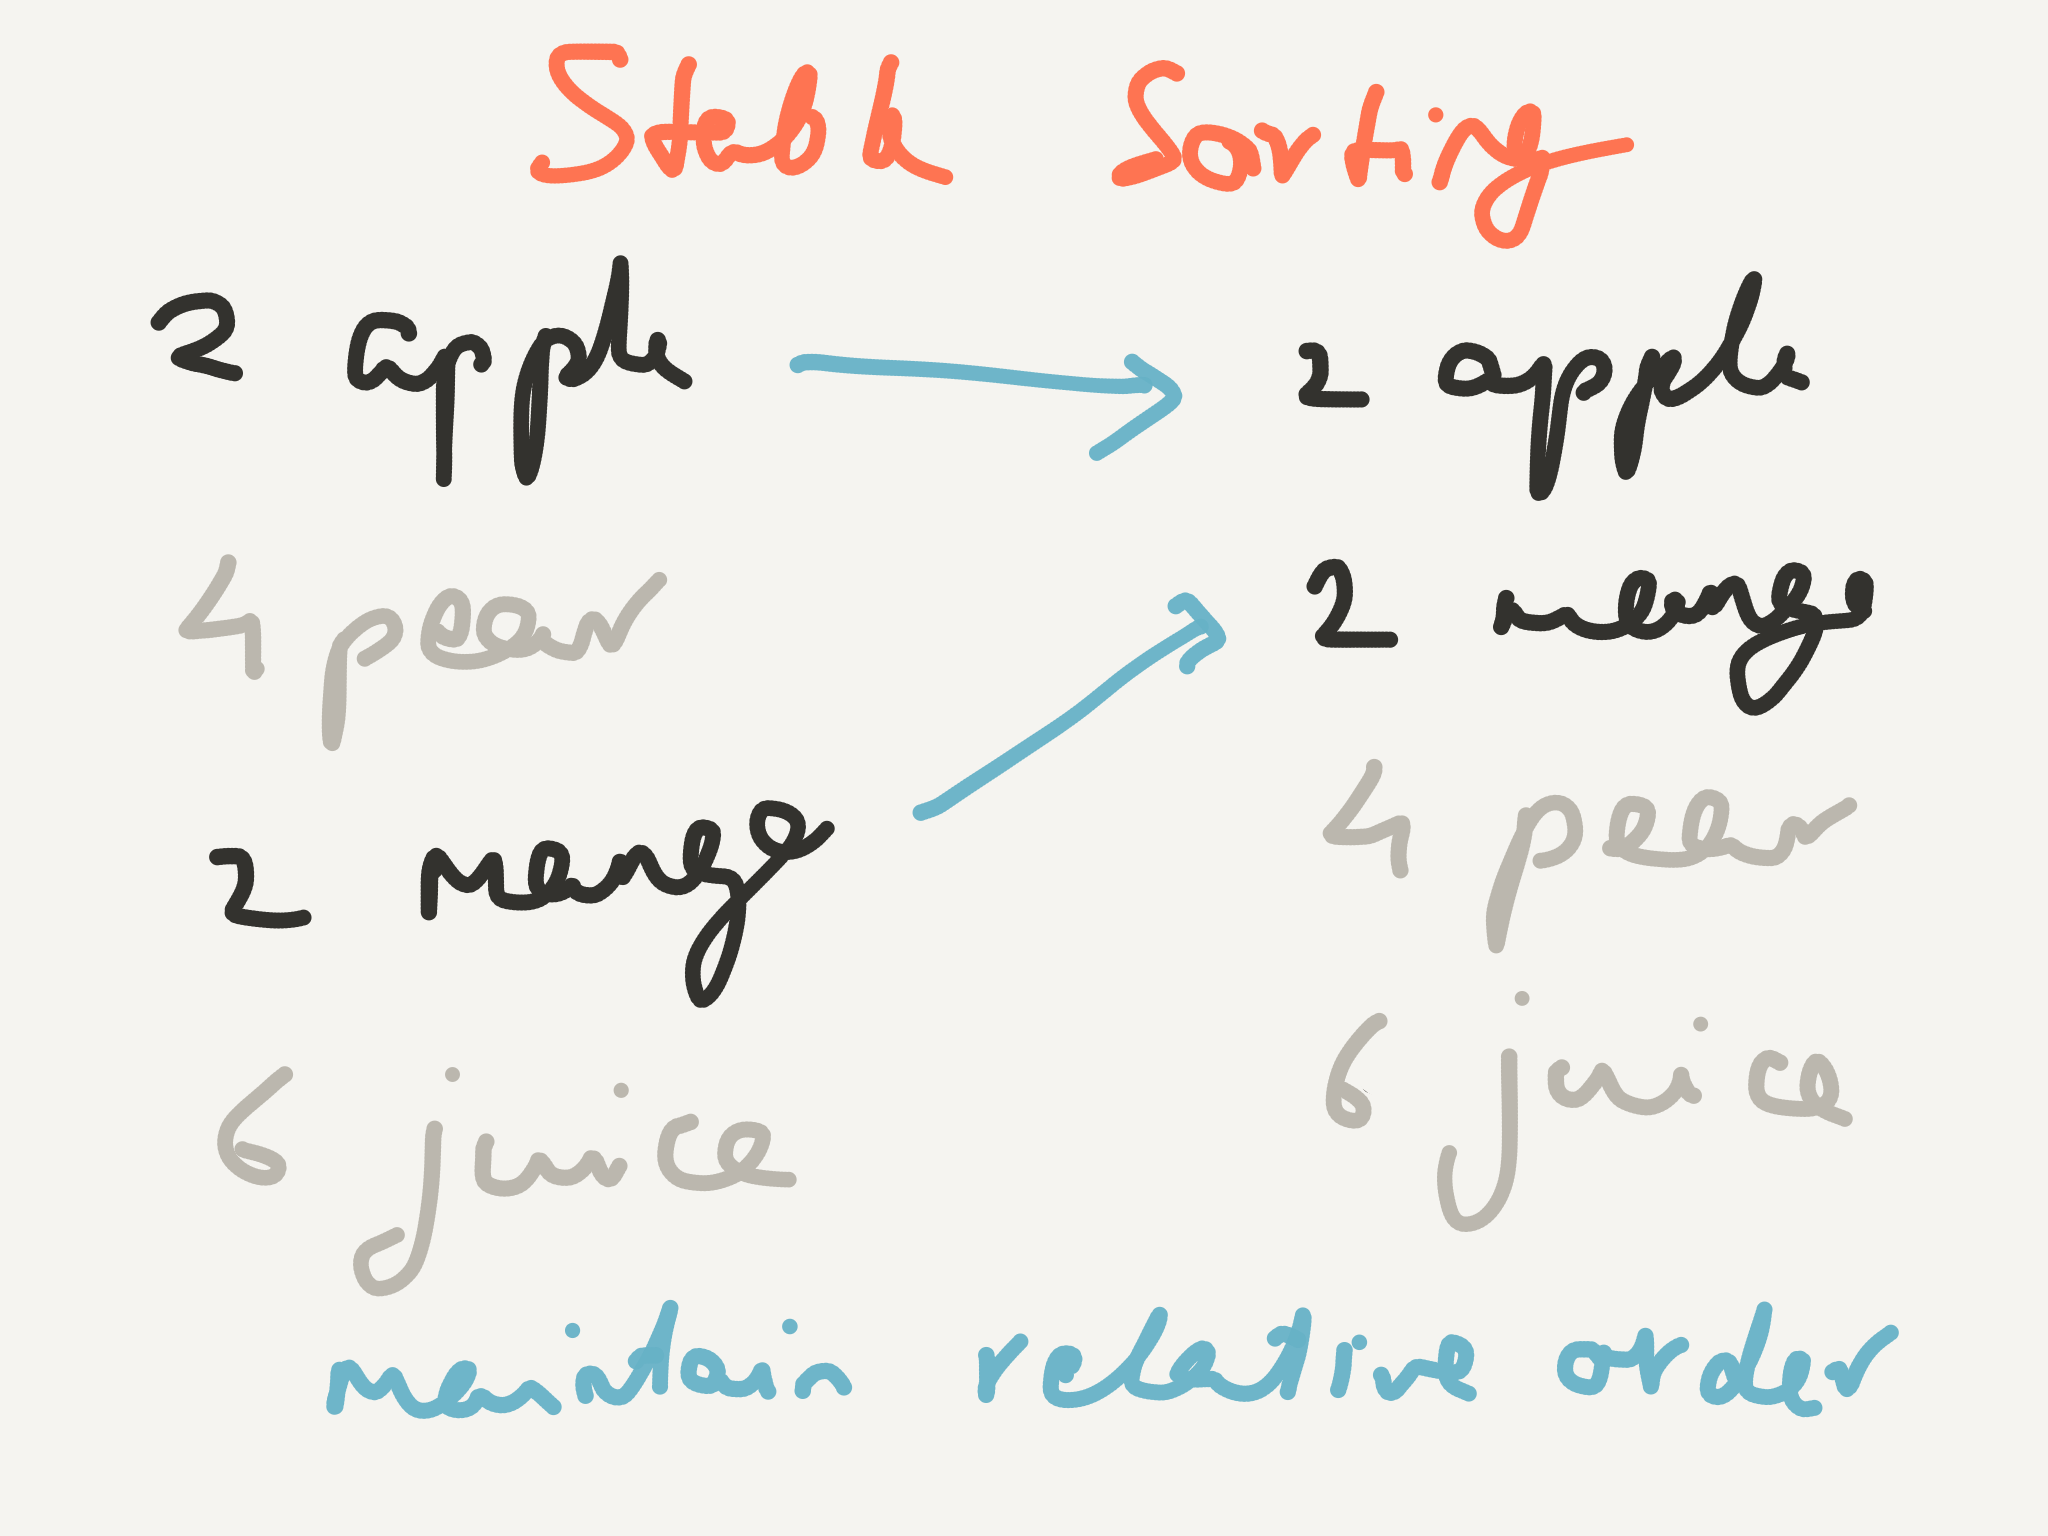 Stable sorting maintains the original order if two keys are the same